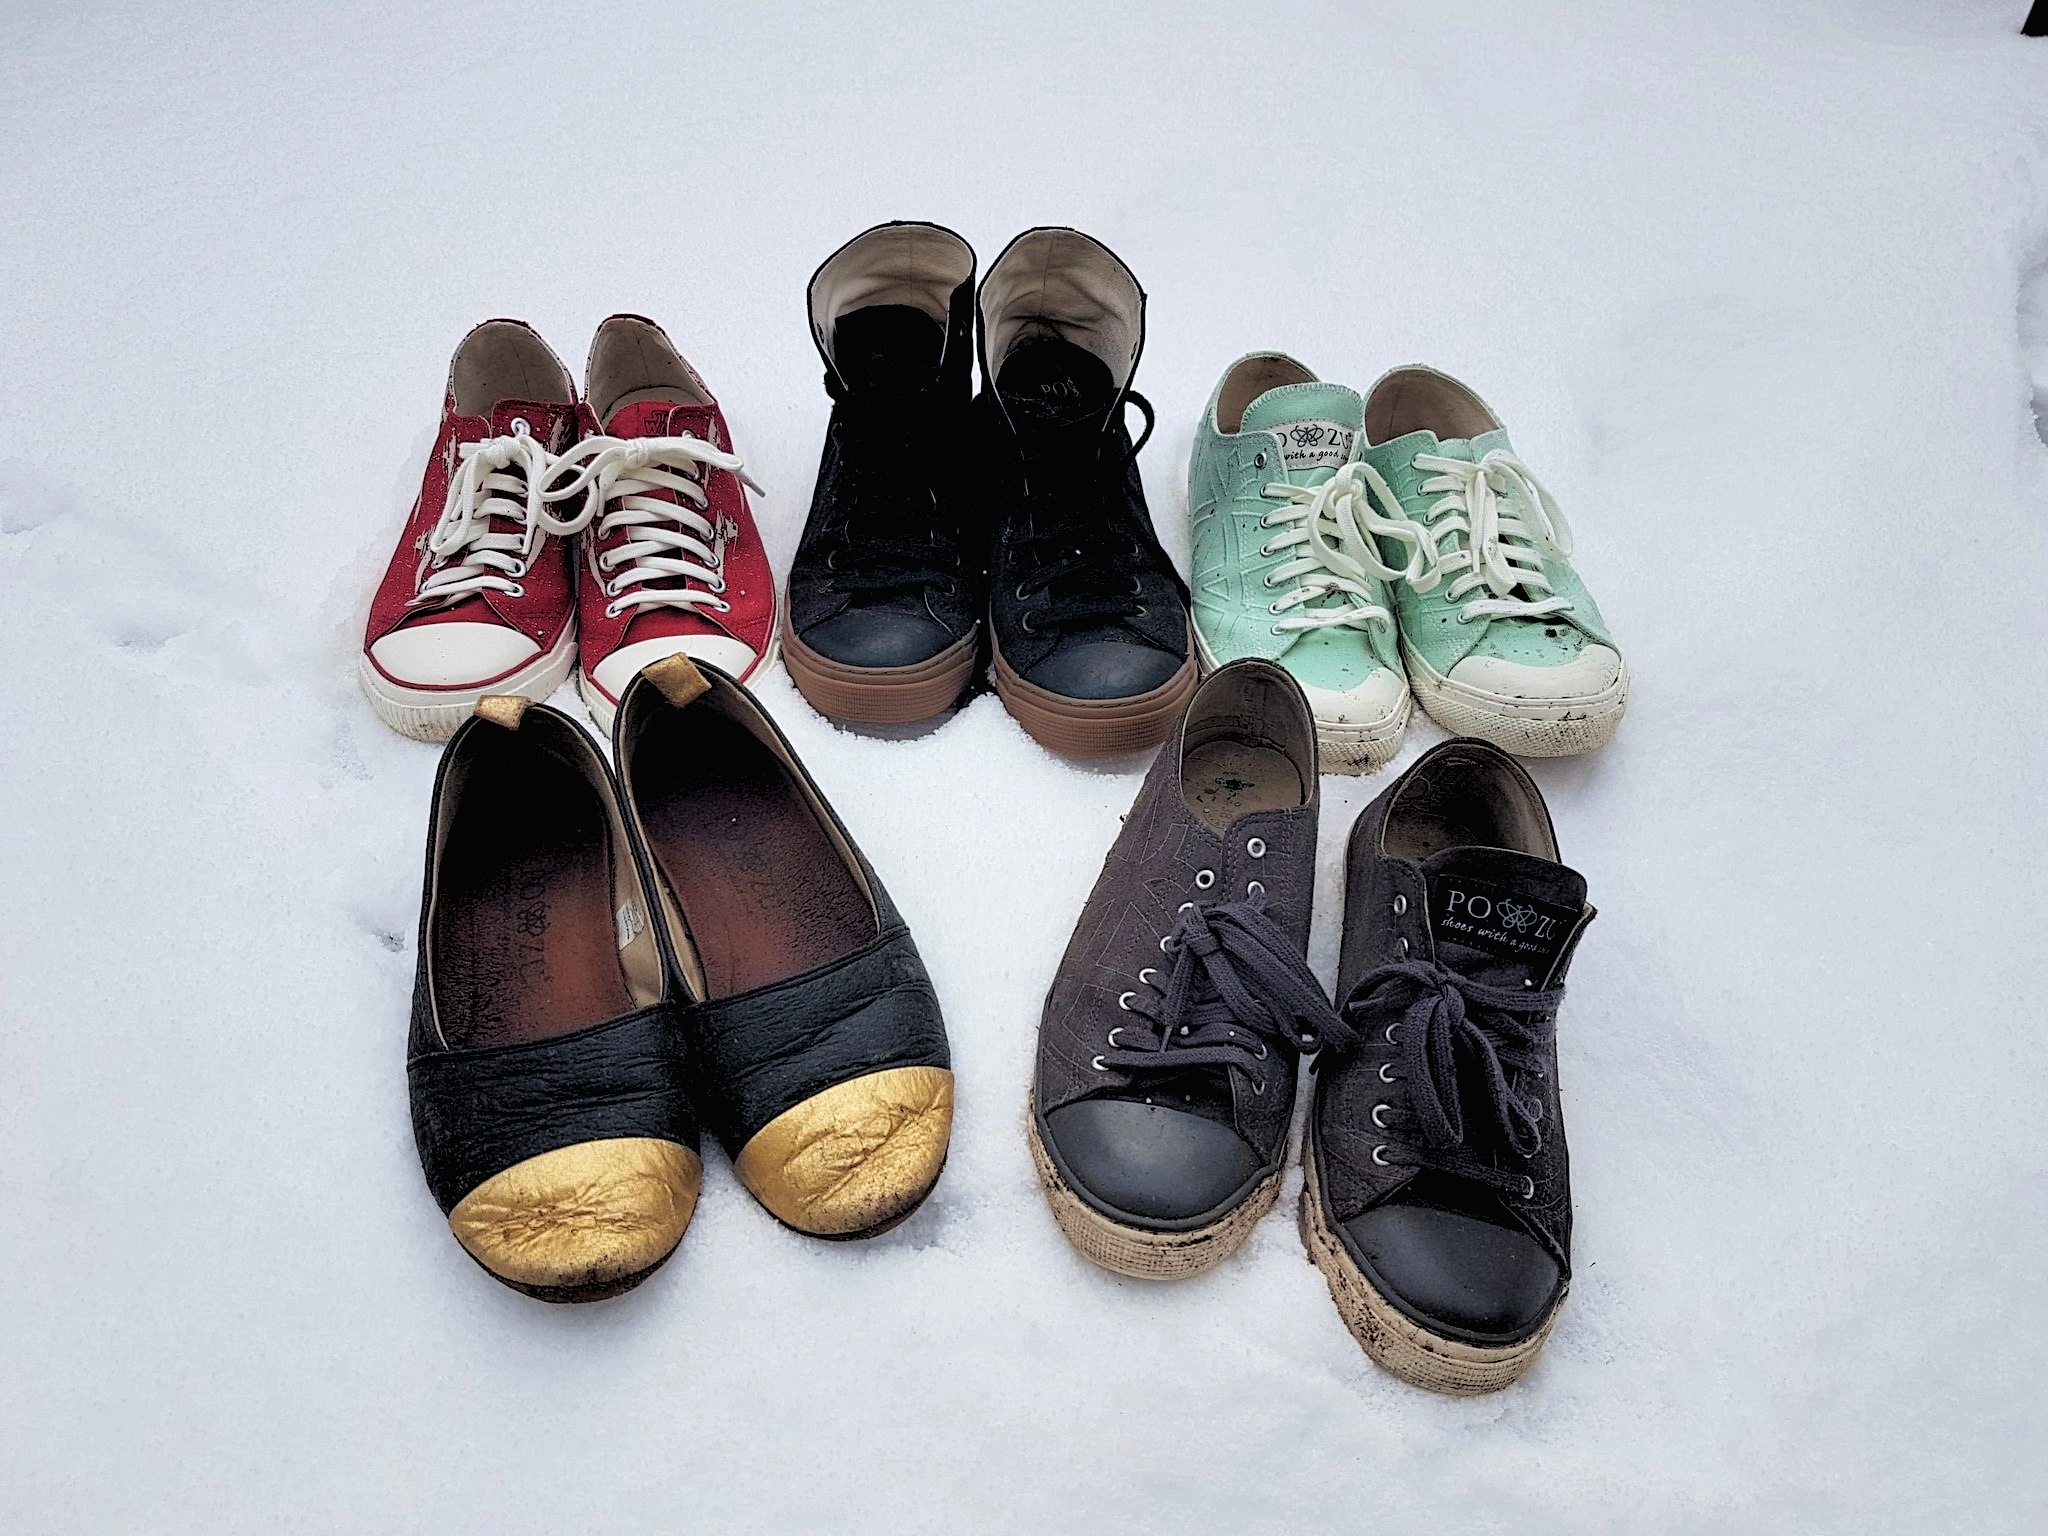 five pairs of Po-Zu shoes sitting in crisp white snow